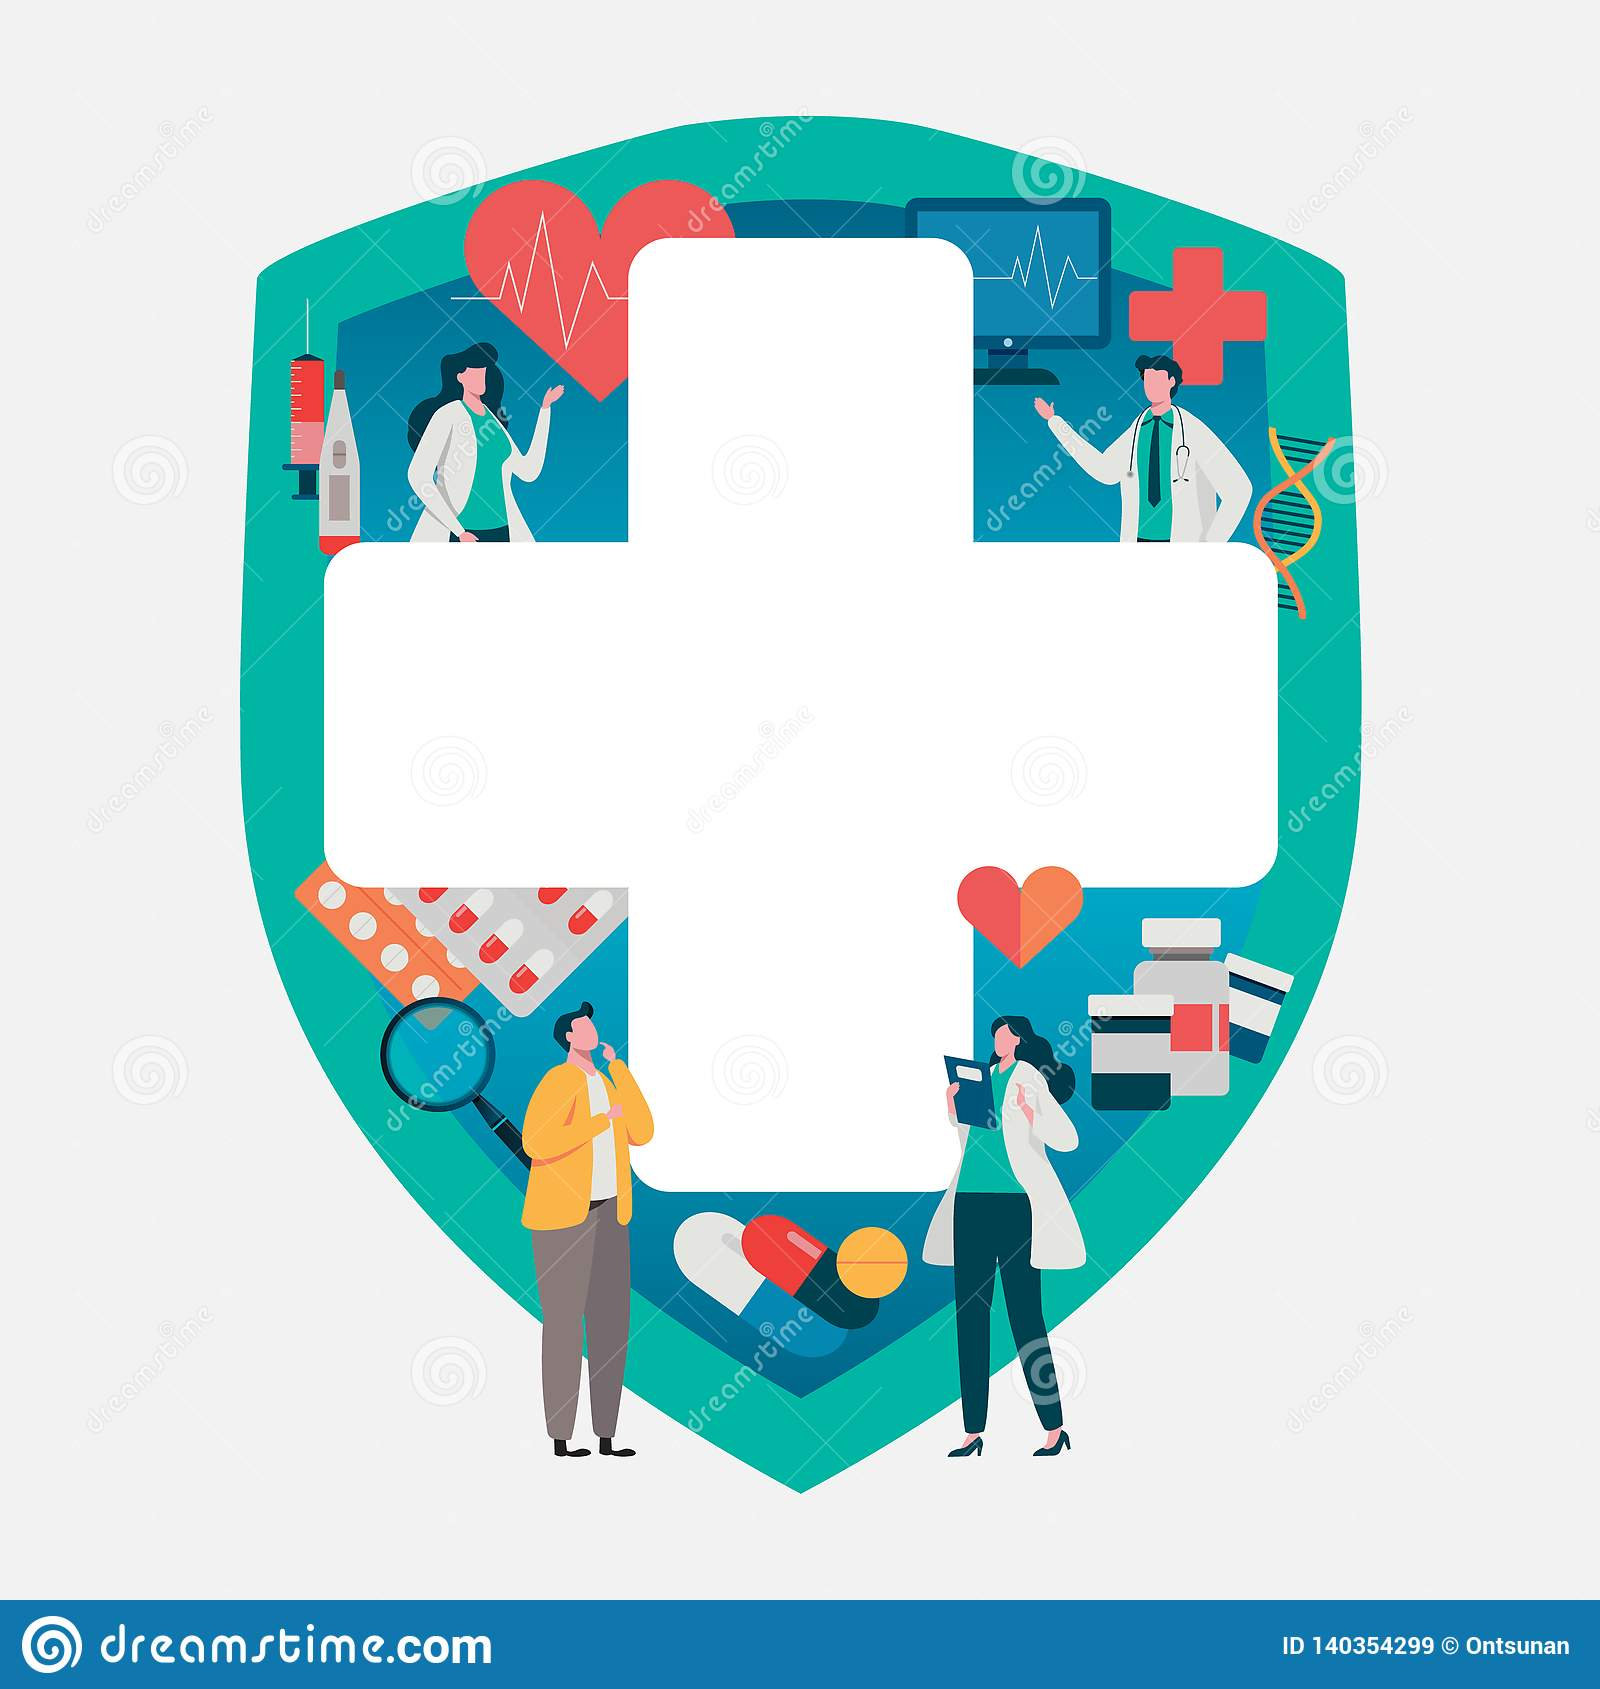 Patient consultation to the doctor. Health care concept, Medical team. Healthy Application. Flat vector illustration